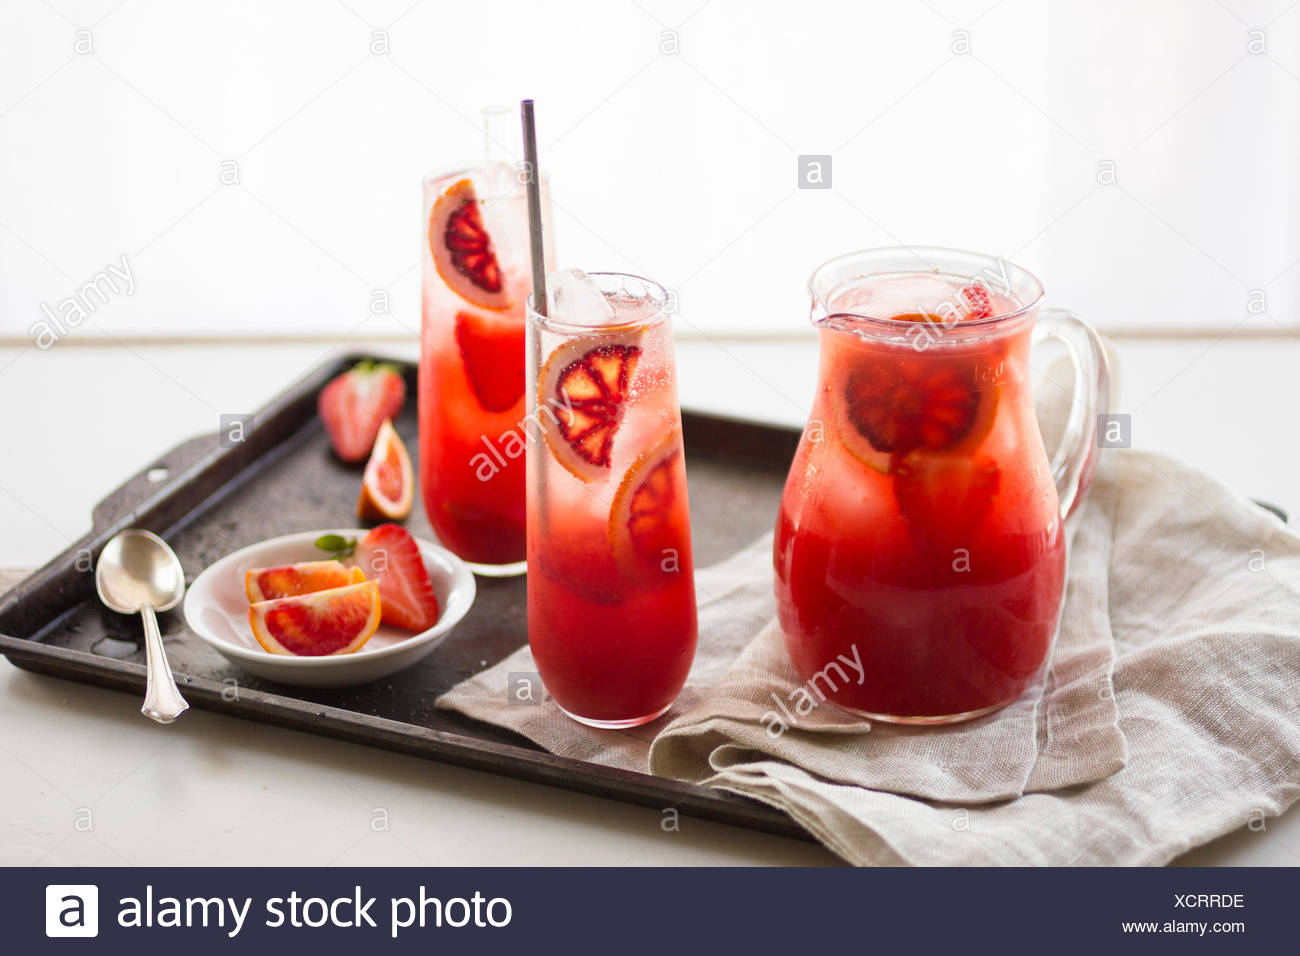 Strawberry Punch bebida naranja sanguina Imagen De Stock